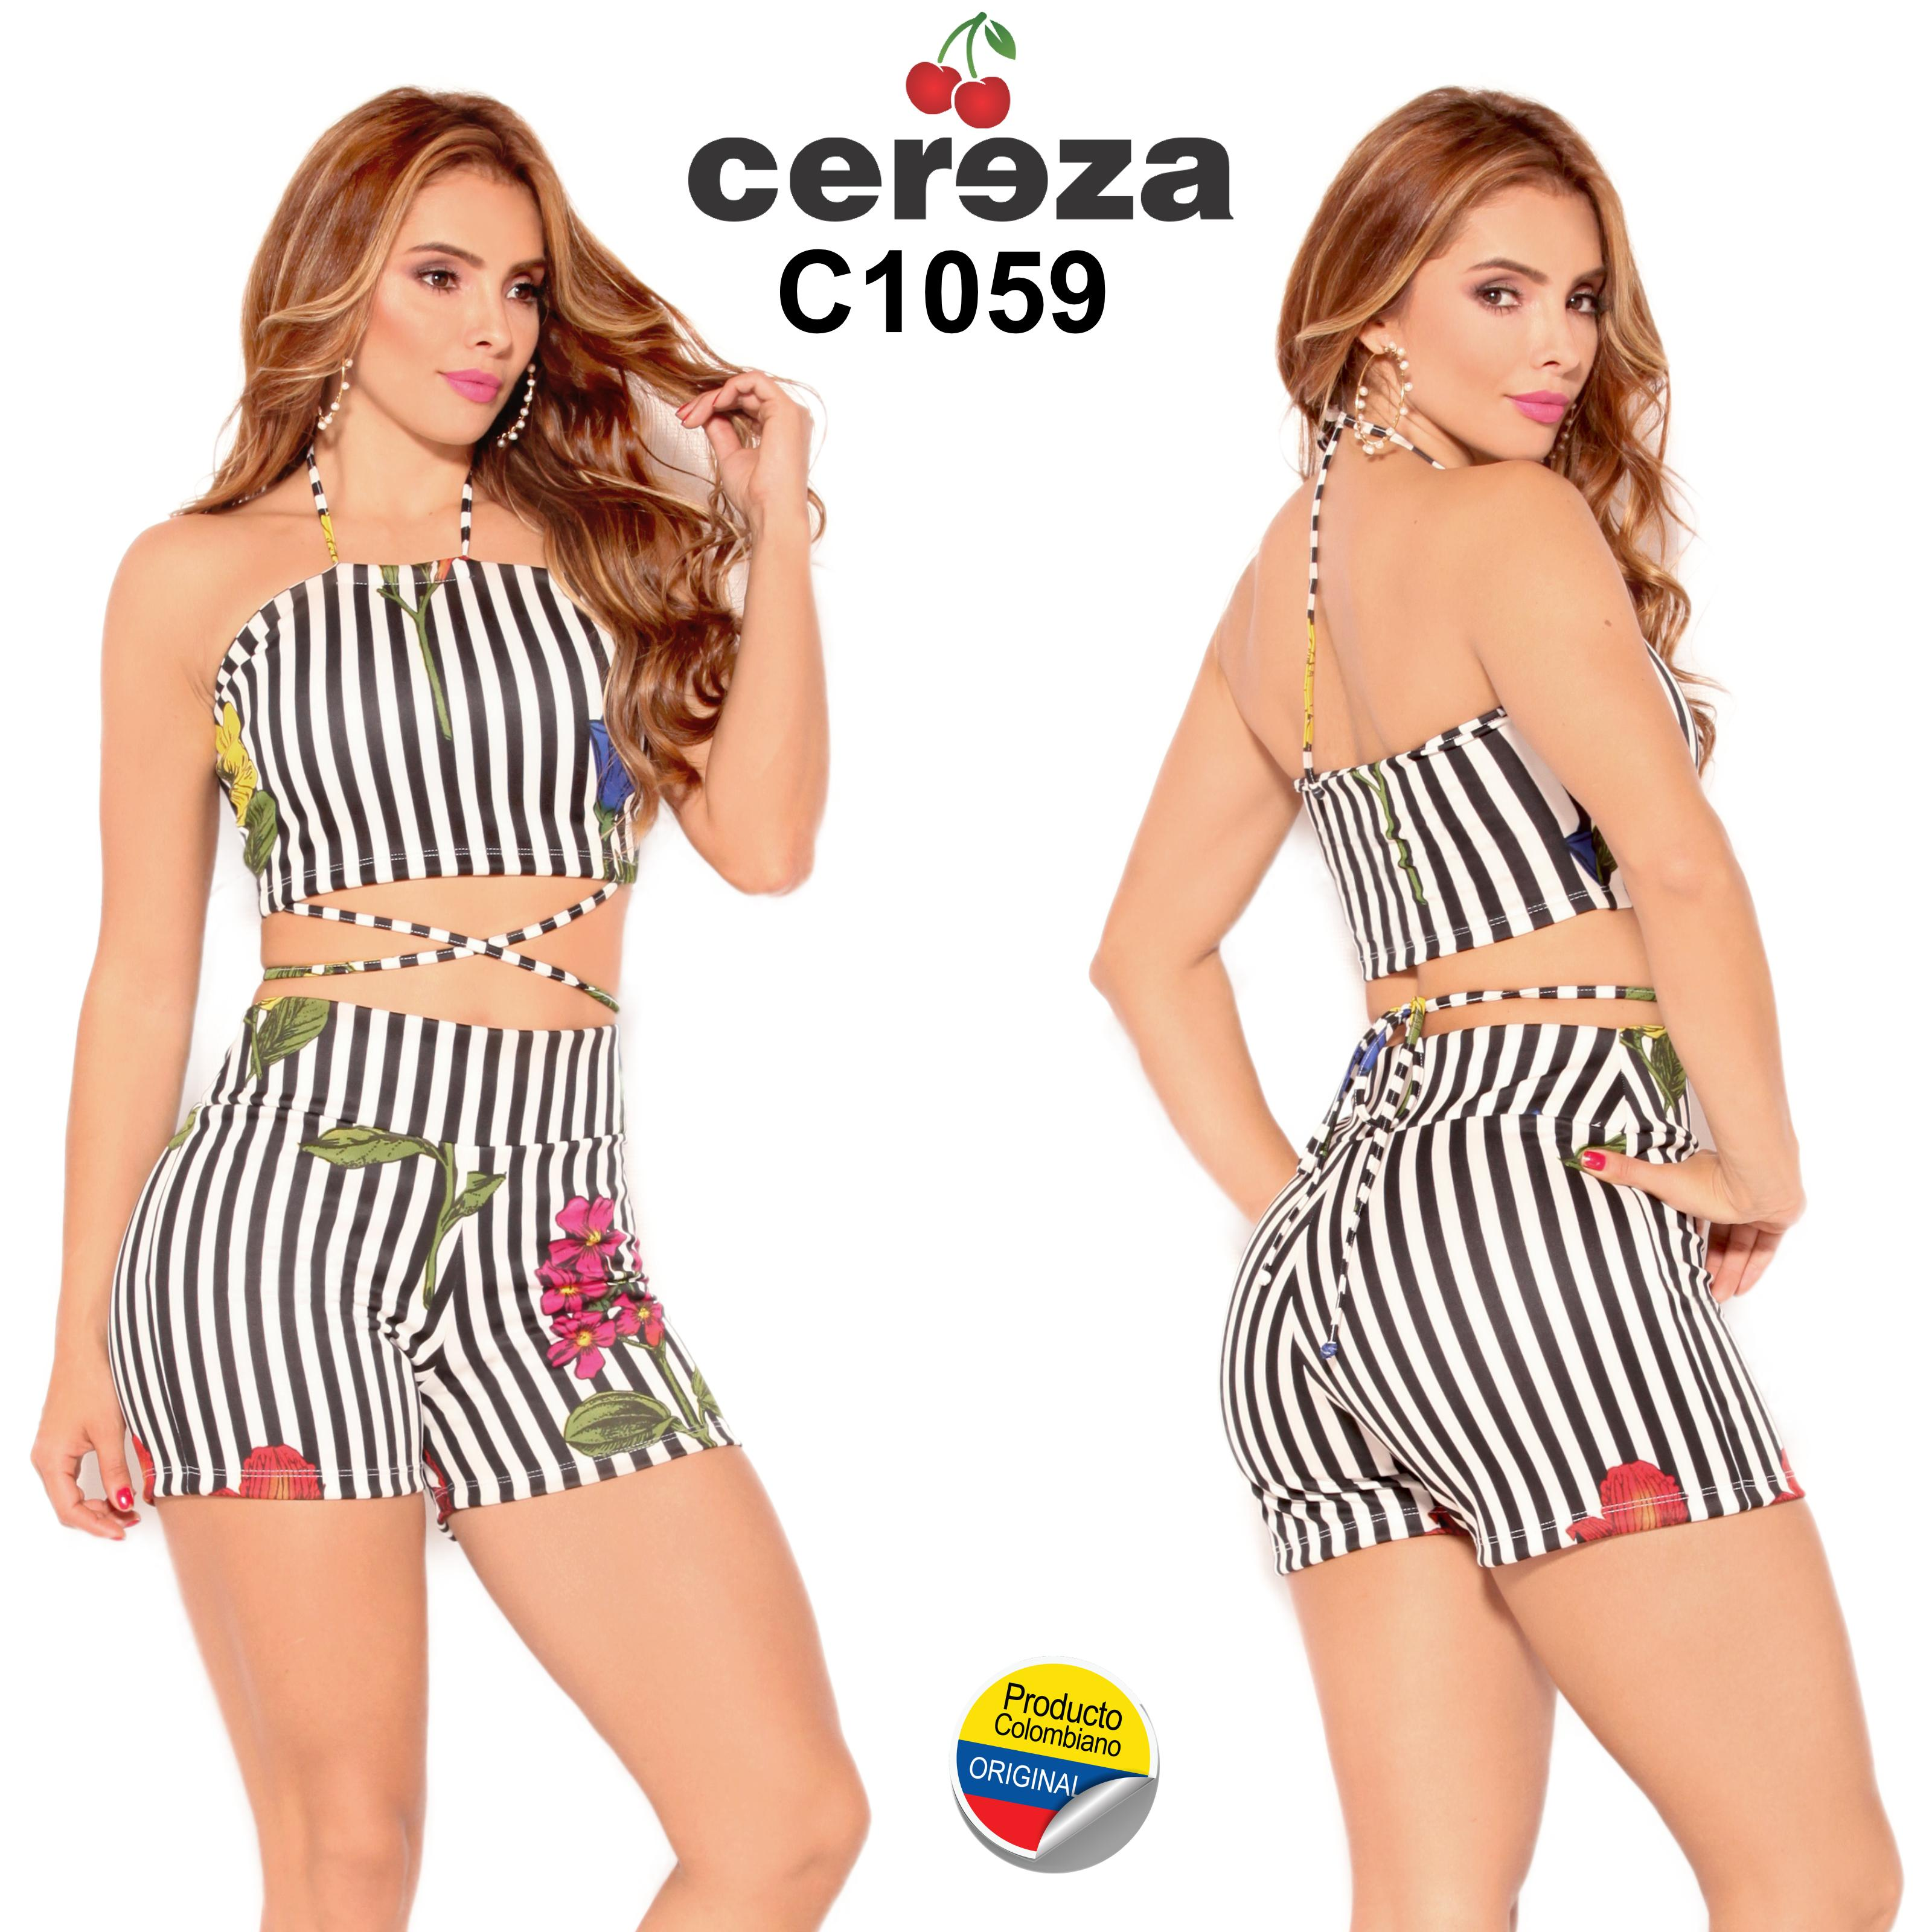 Colombian Short and Blouse in Set for Summer, Colors Black and White with Striped Design